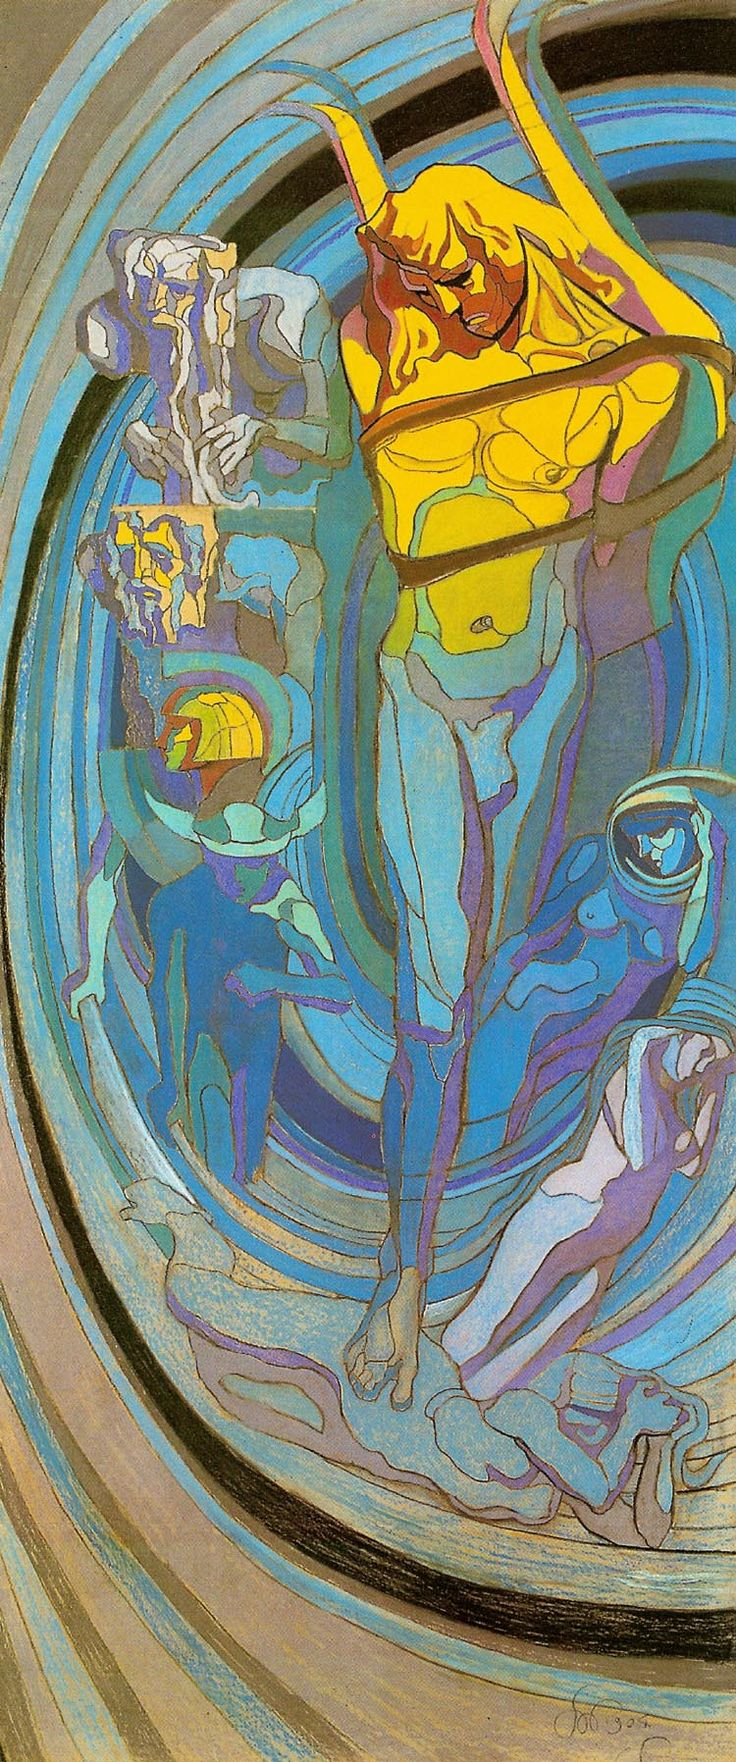 """Apollo"" (1904) by  Stanisław Wyspiański (1869-1907), stained glass design, pastel, 343 x 146 cm, National Museum, Cracow"